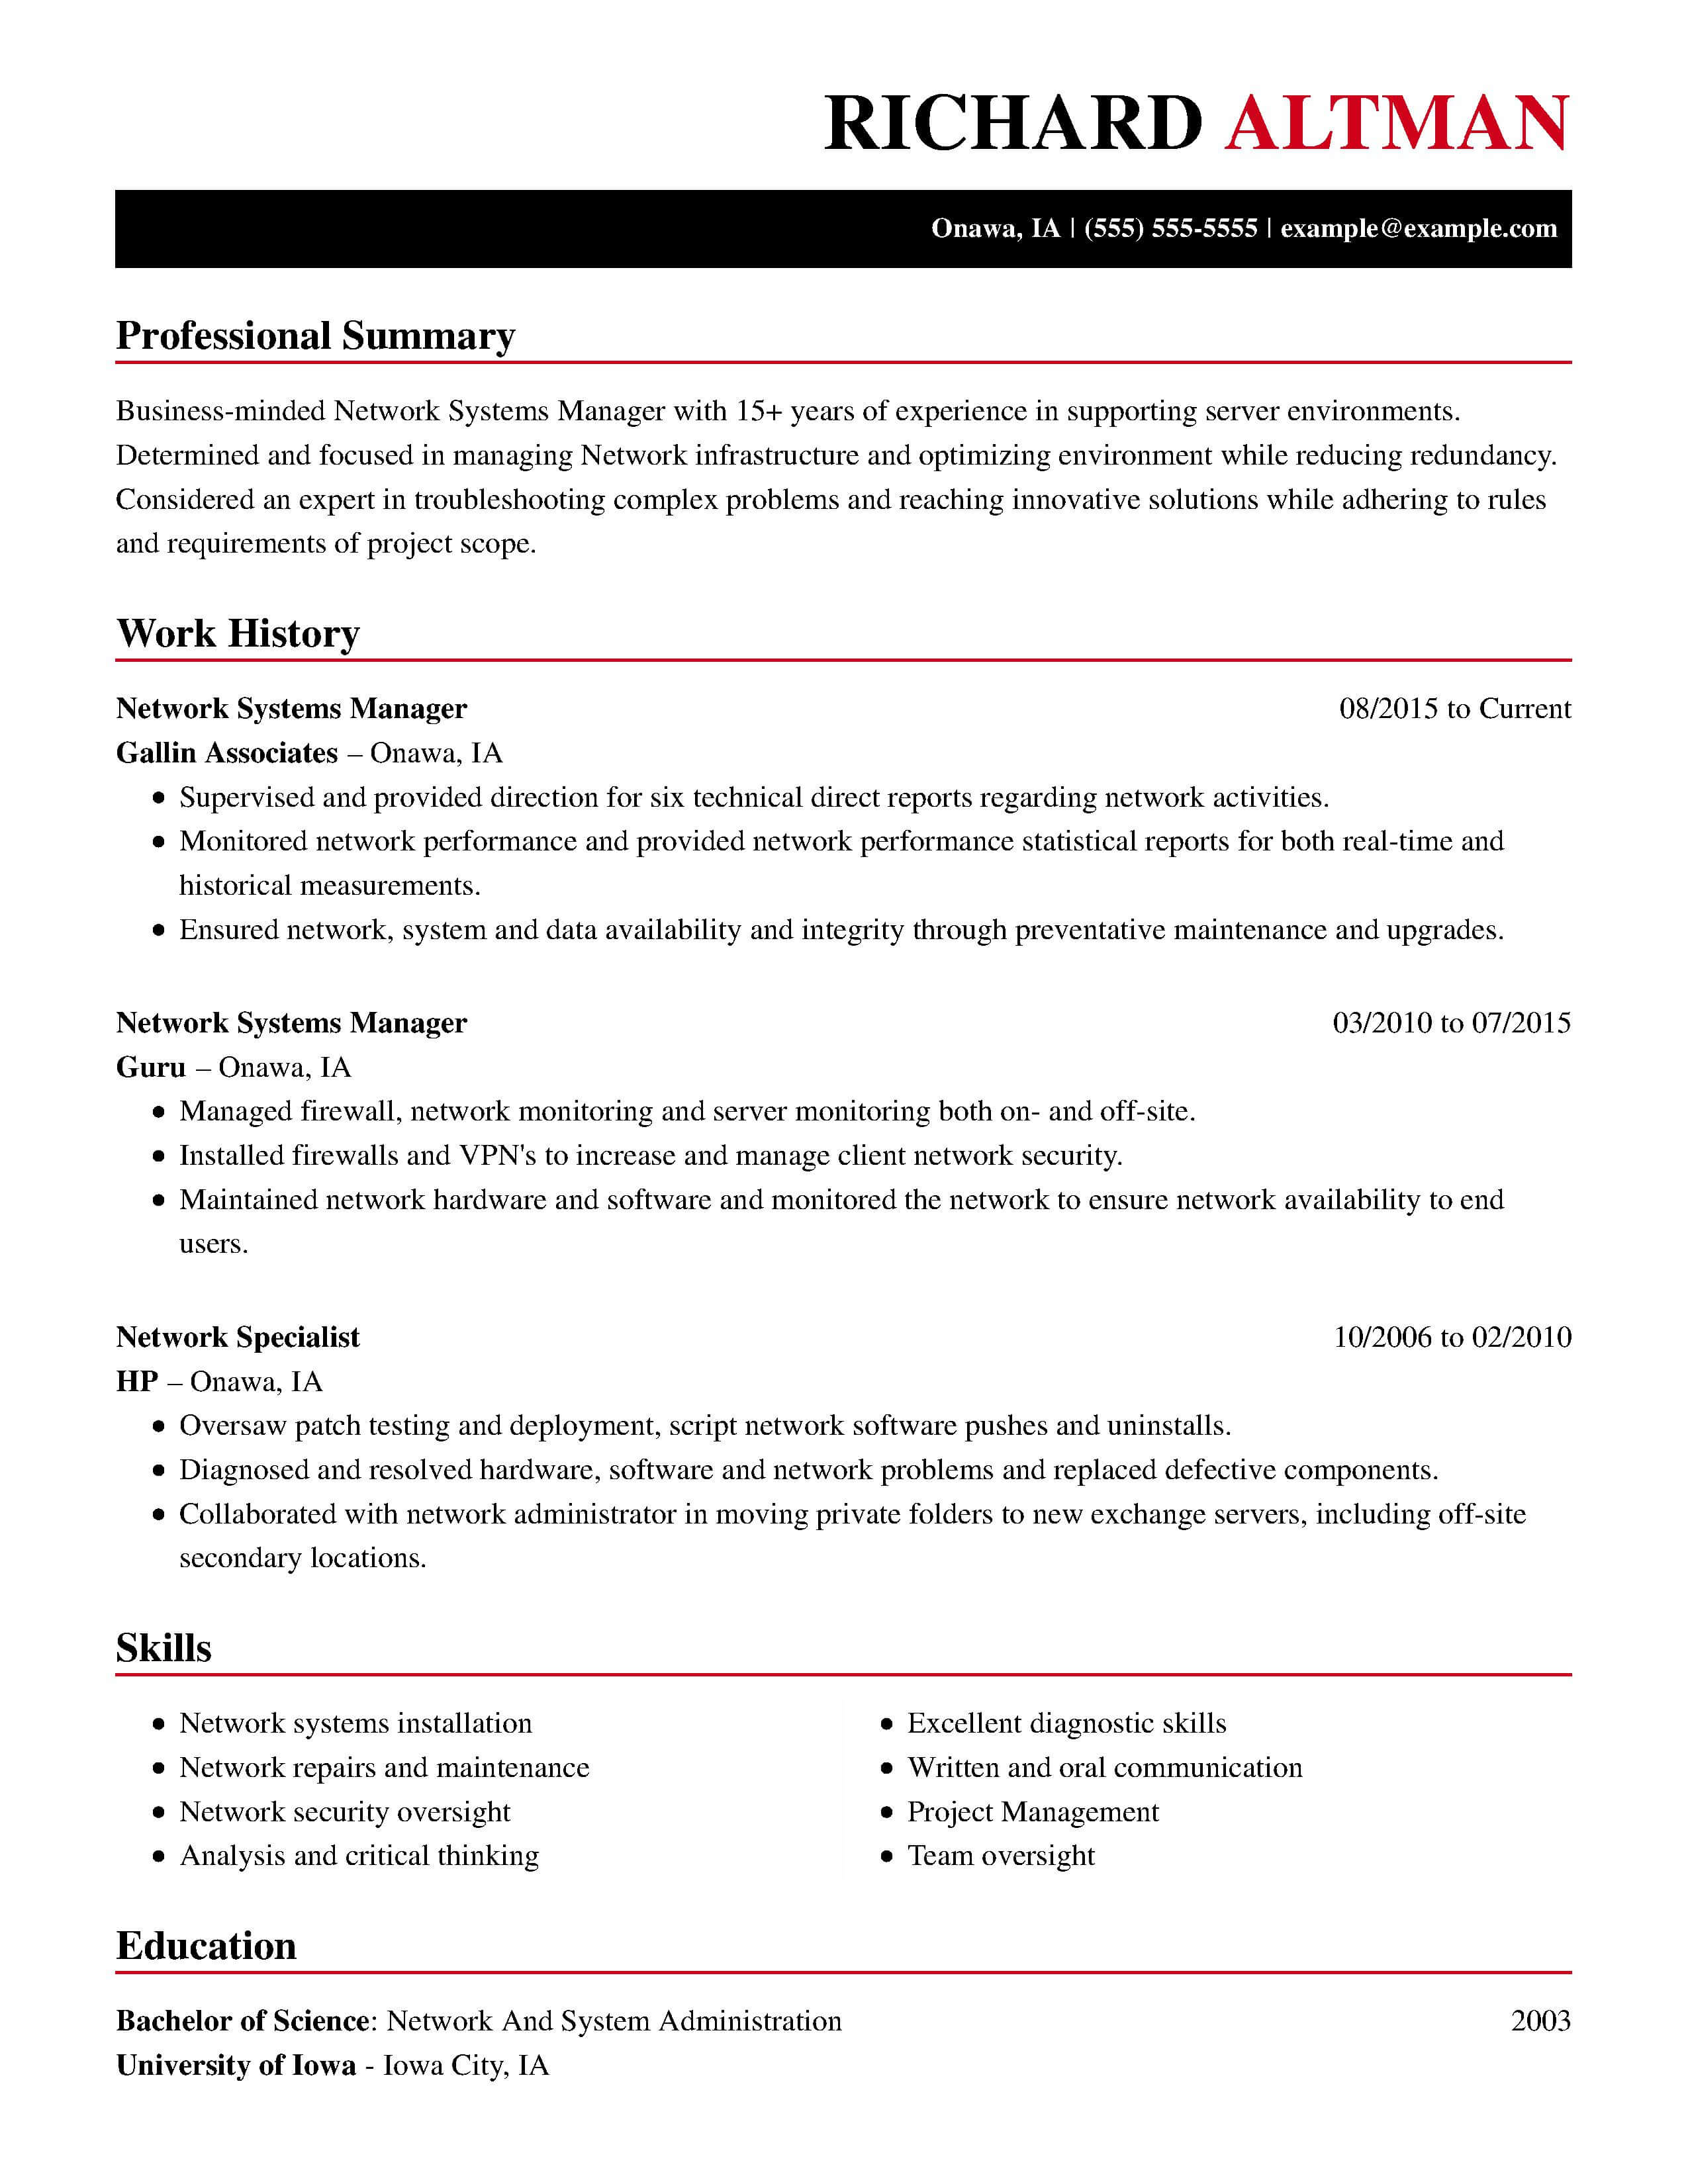 Examples Of A Resume 30 Resume Examples View By Industry Job Title